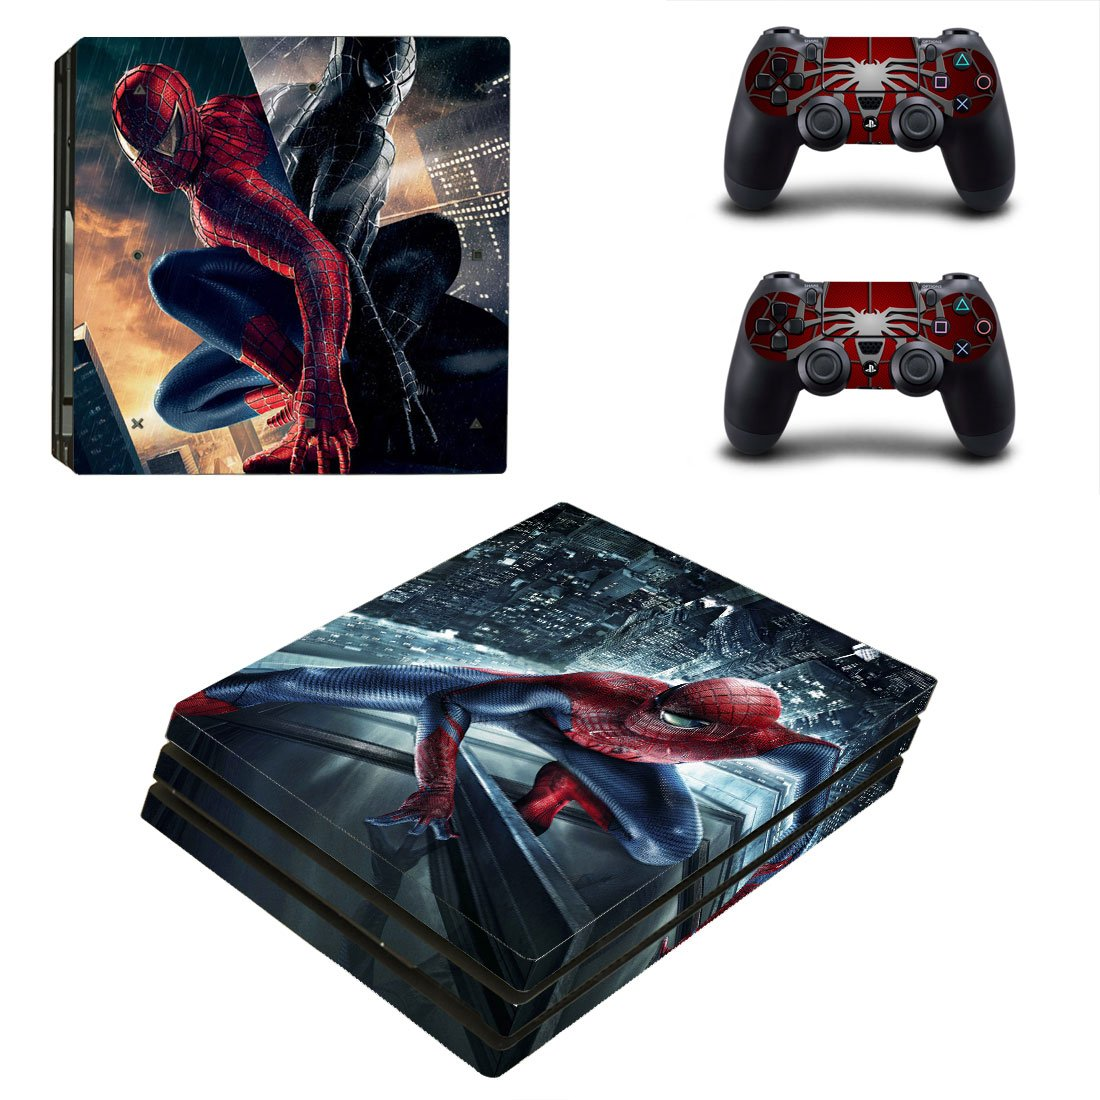 Spider-Man PS4 Pro Skin Sticker Wrap